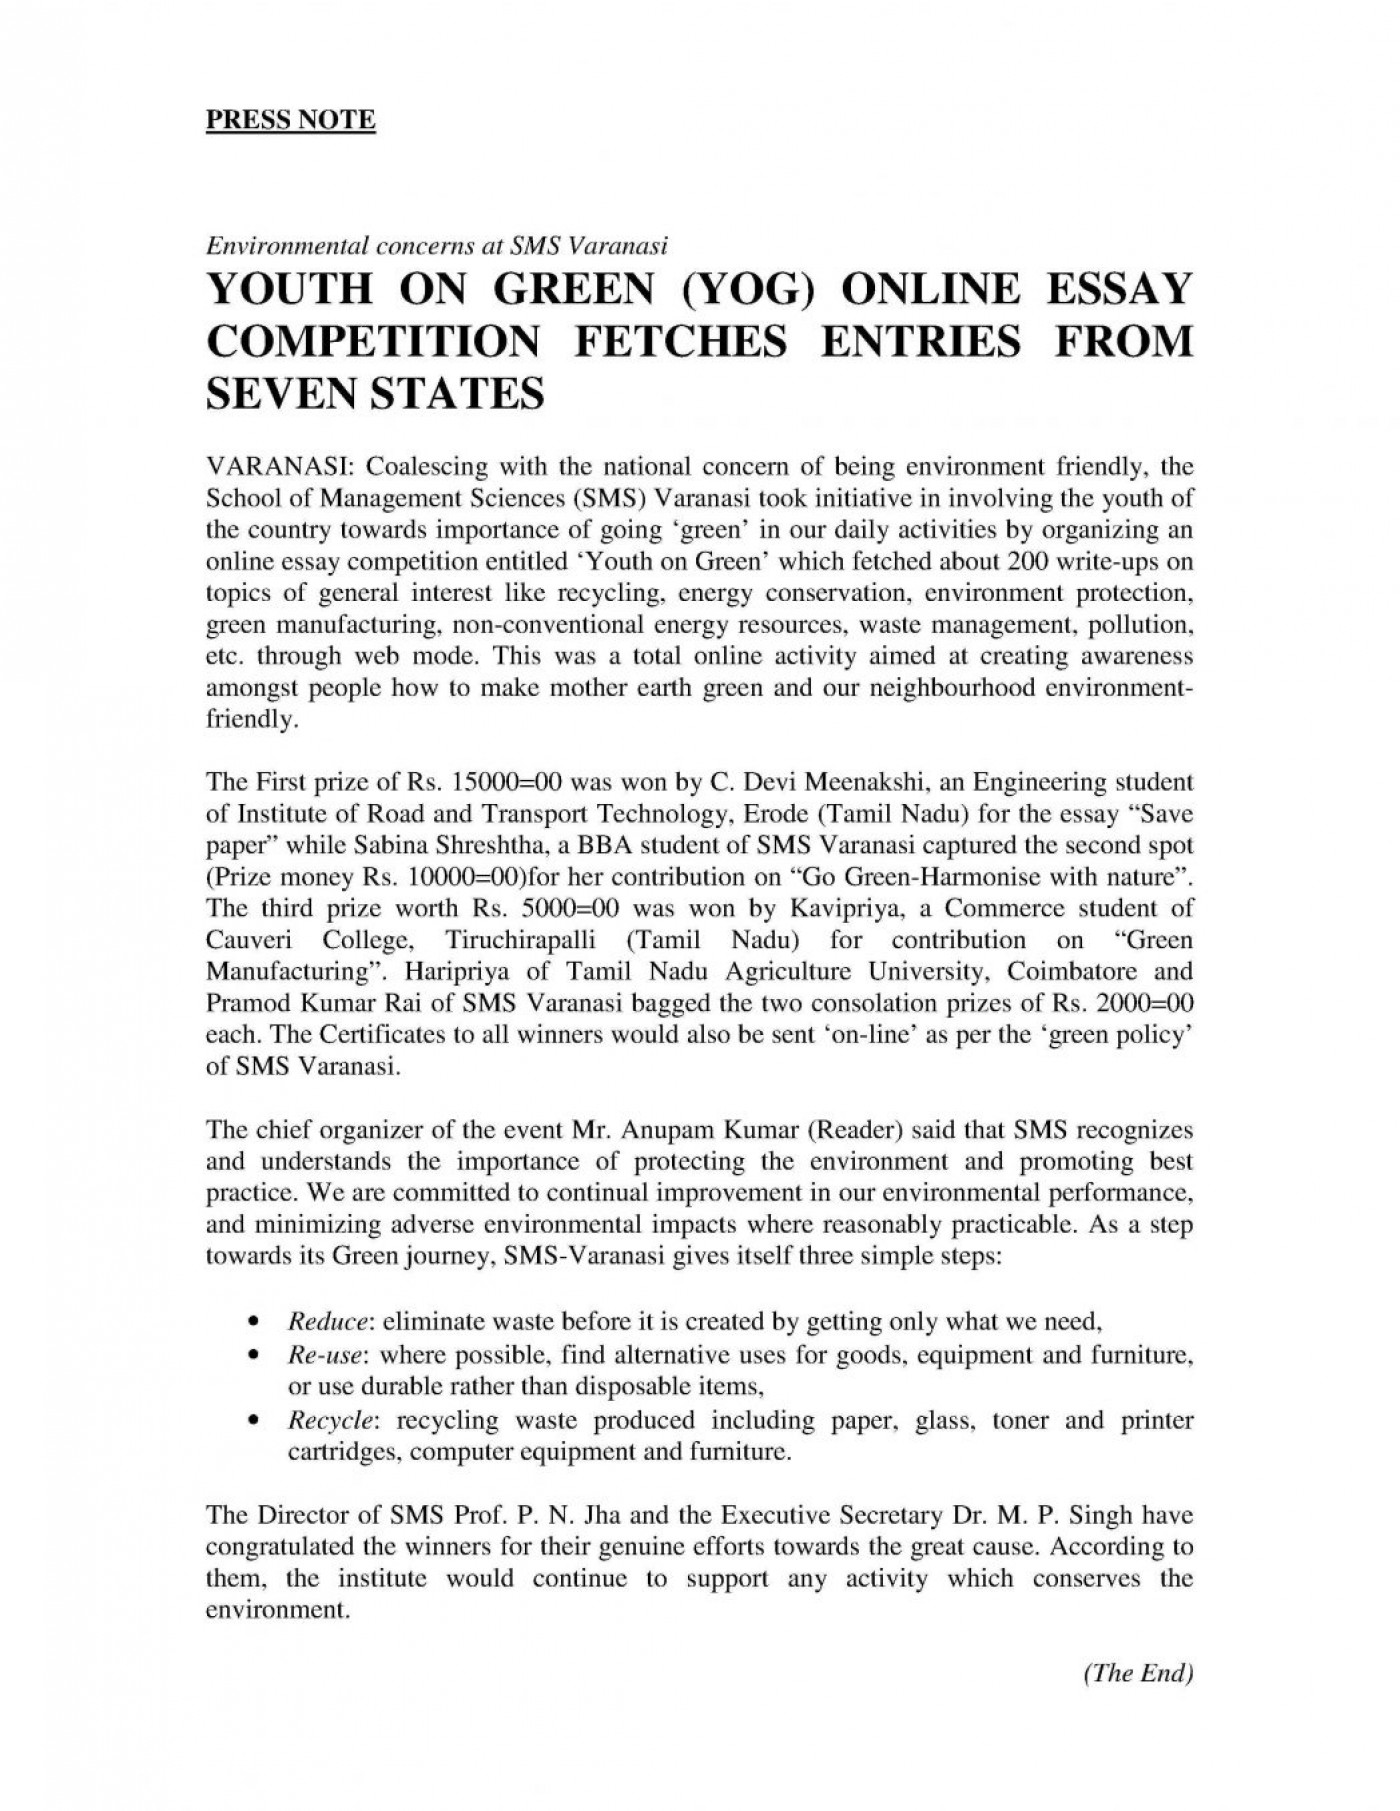 020 Best Essays For College Essay On Good Habits How Tot Application Online Yog Press Re About Yourself Examples Your Background Failure Prompt Off Hook 1048x1356 Example Amazing To Start An With A Definition Rhetorical Question Life 1400